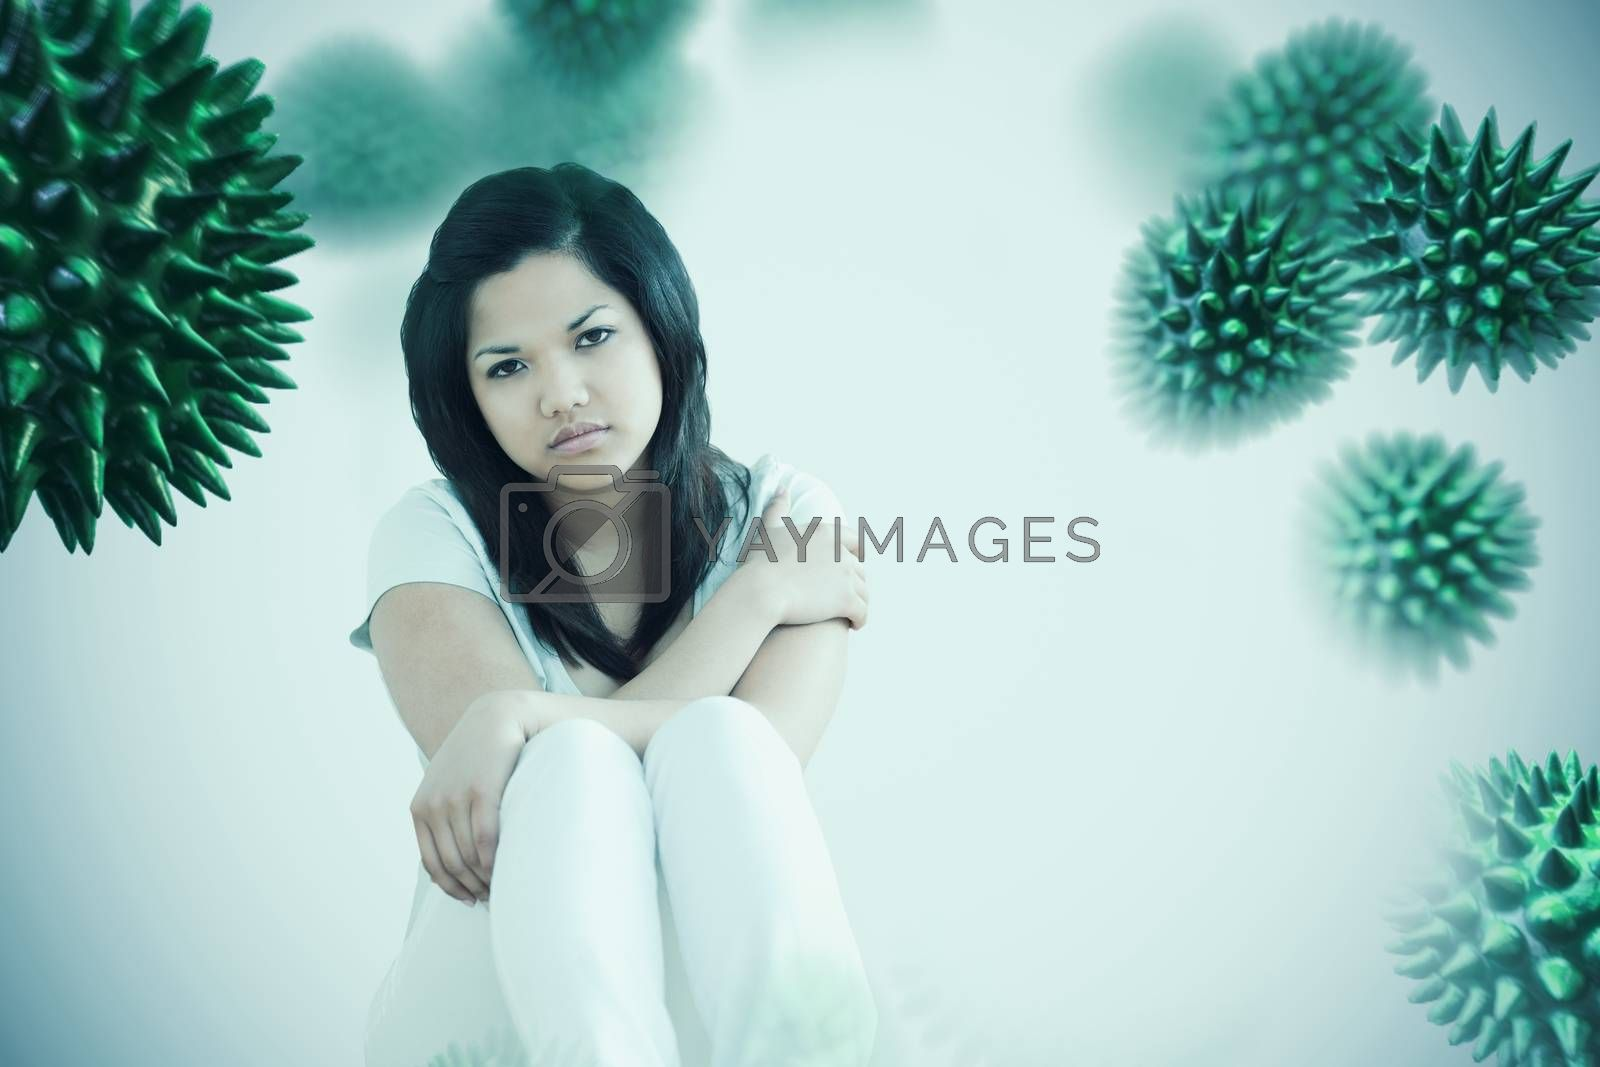 Barefoot woman sitting on the floor  against white background with vignette